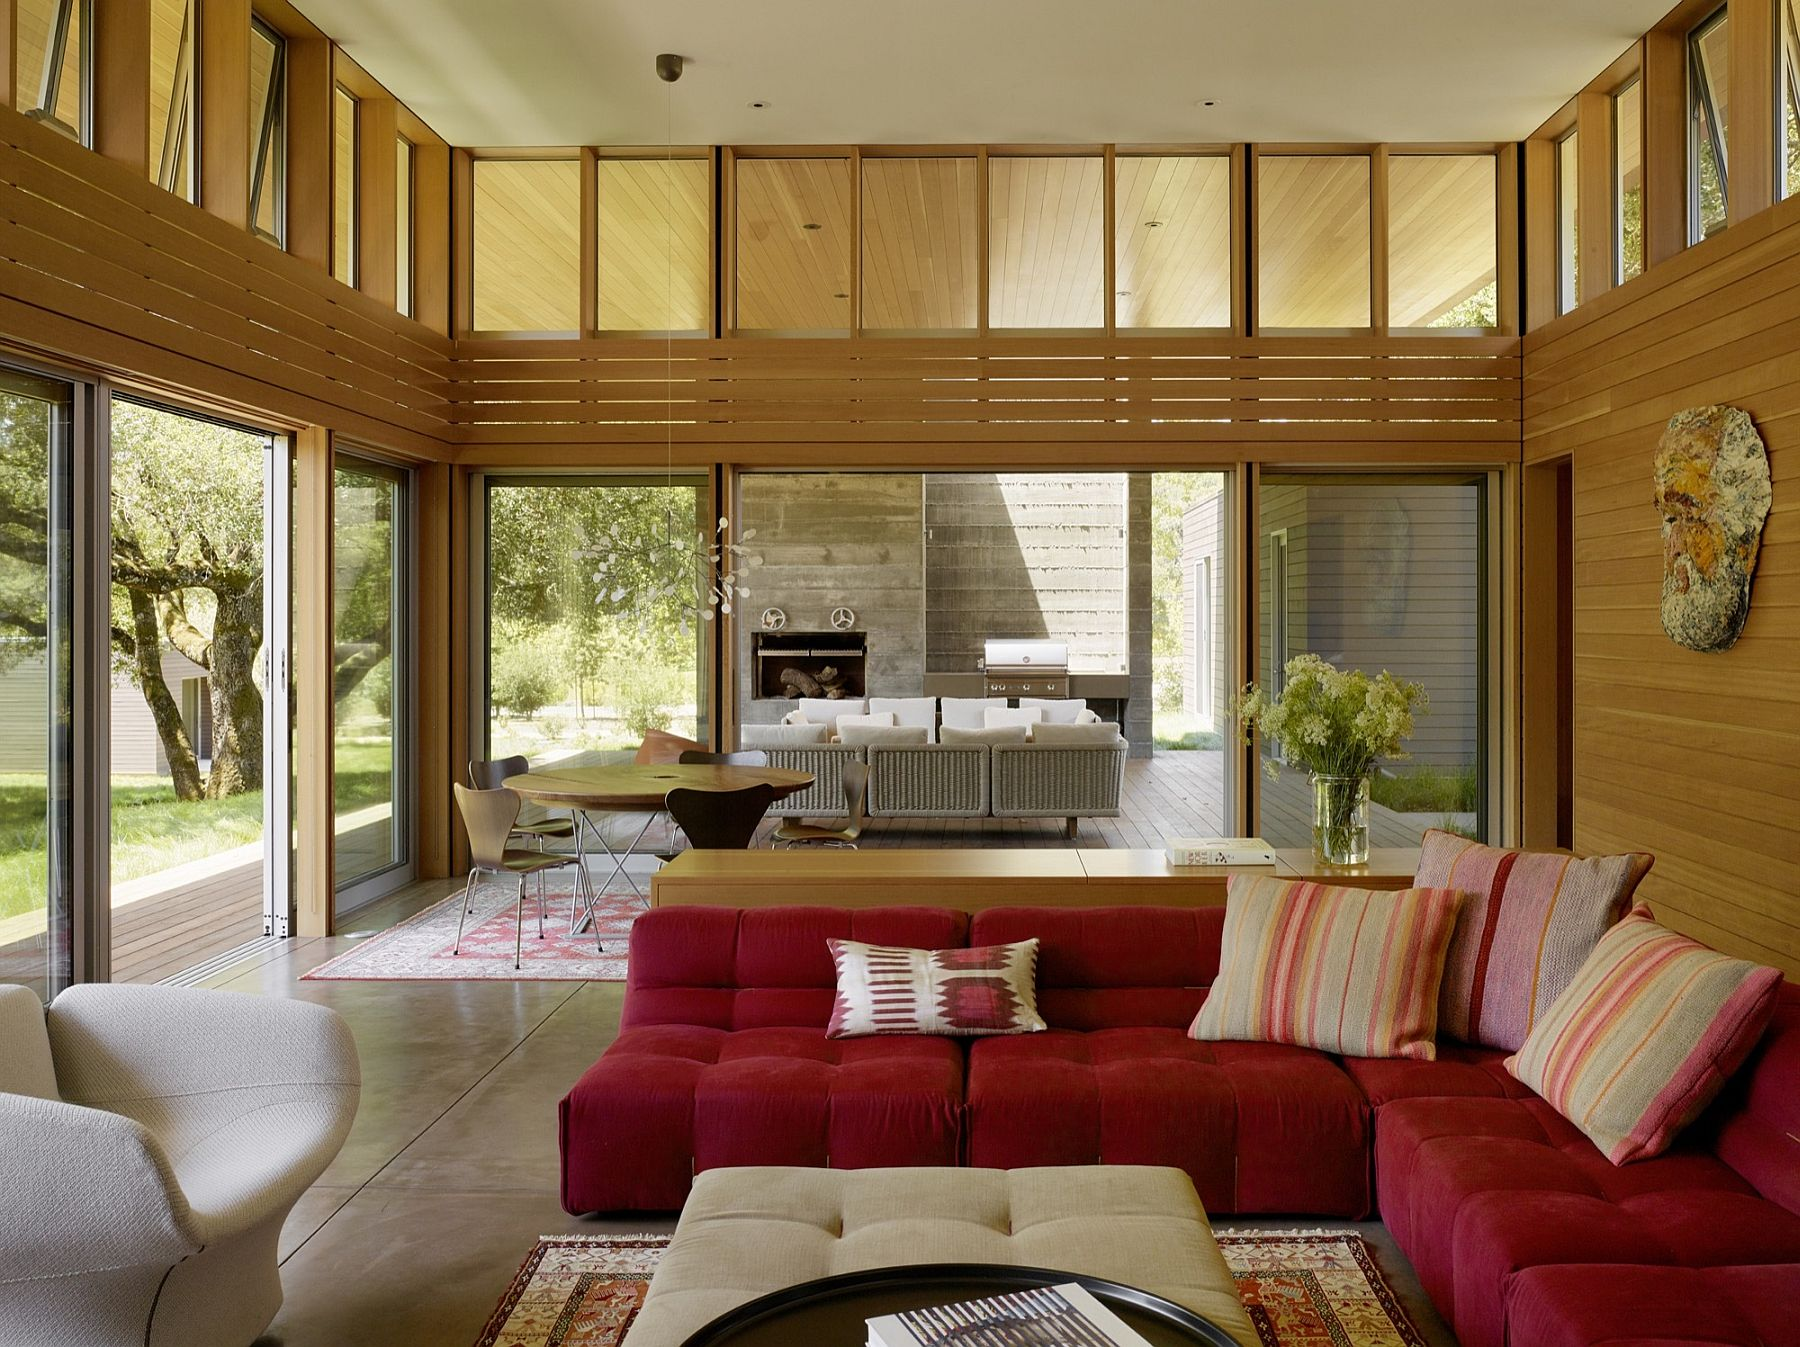 Living area of the Sonoma Residence interacts with the scenery outside